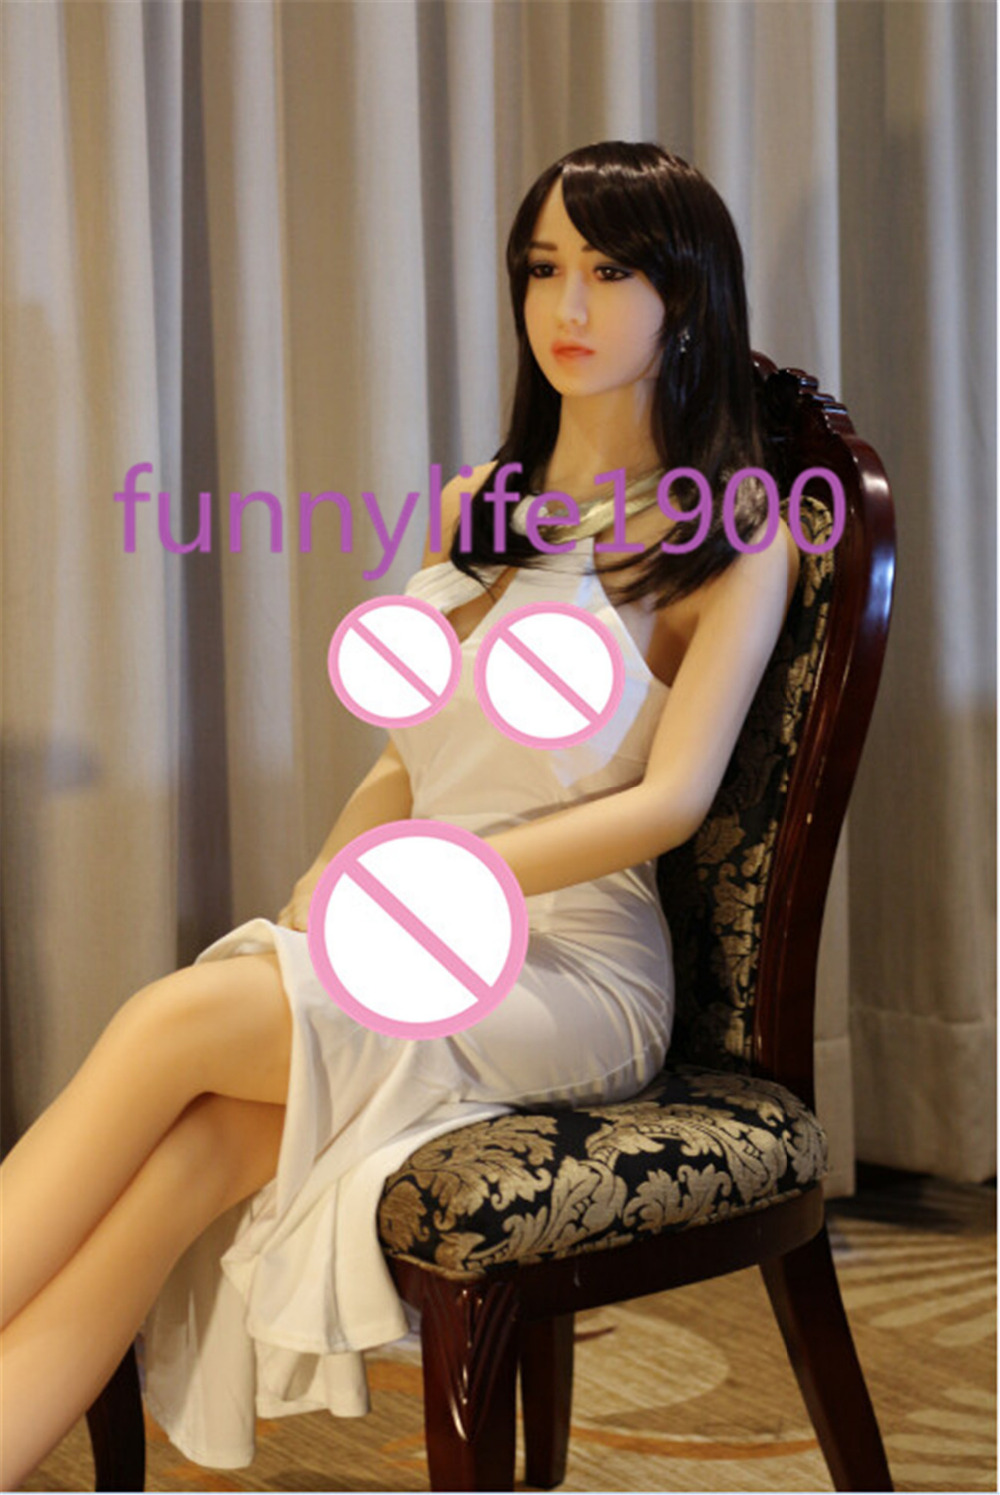 Real <font><b>Silicone</b></font> <font><b>Sex</b></font> <font><b>Dolls</b></font> 165cm For Men Realistic Vagina Anal <font><b>Big</b></font> Breast Lifelike <font><b>Torso</b></font> Head Feet <font><b>Ass</b></font> Masturbator Japanese 158cm image